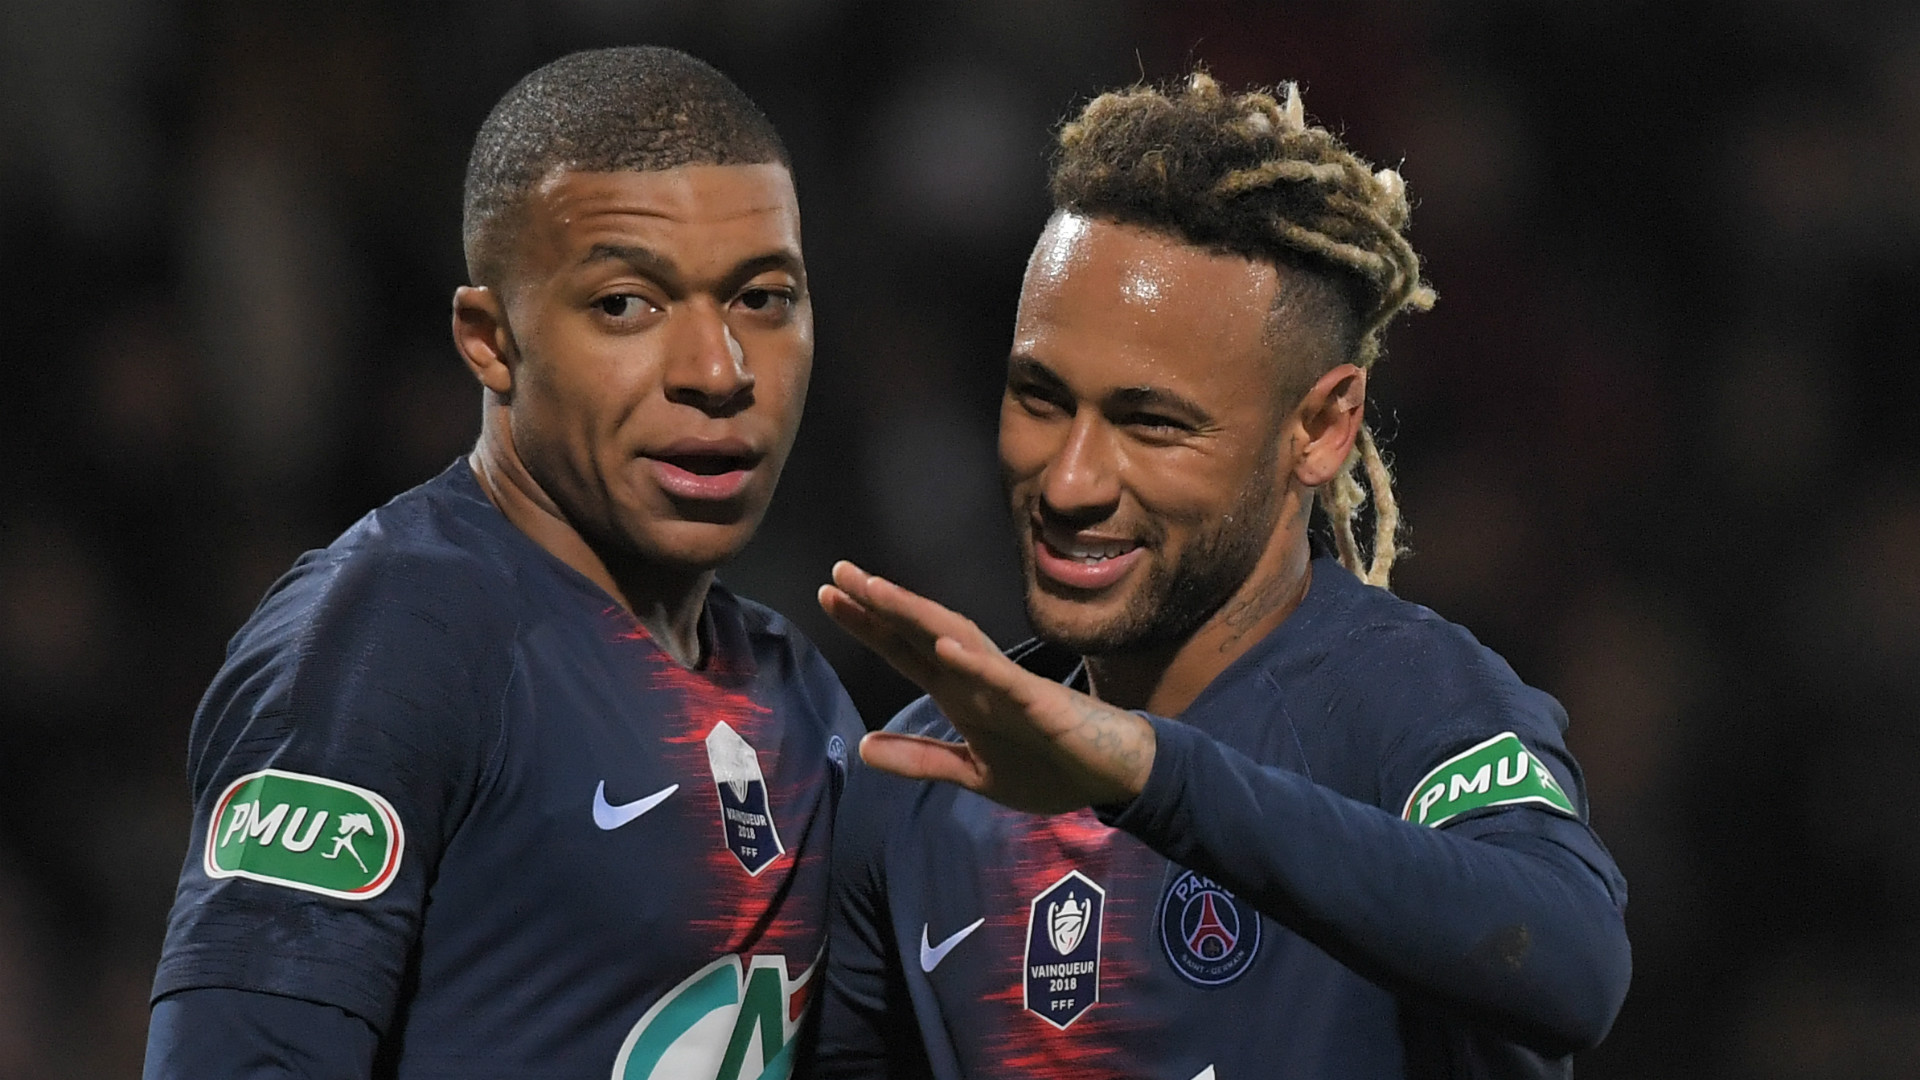 Mbappe or Neymar? Former Real Madrid boss Del Bosque considers one too childish for Blancos